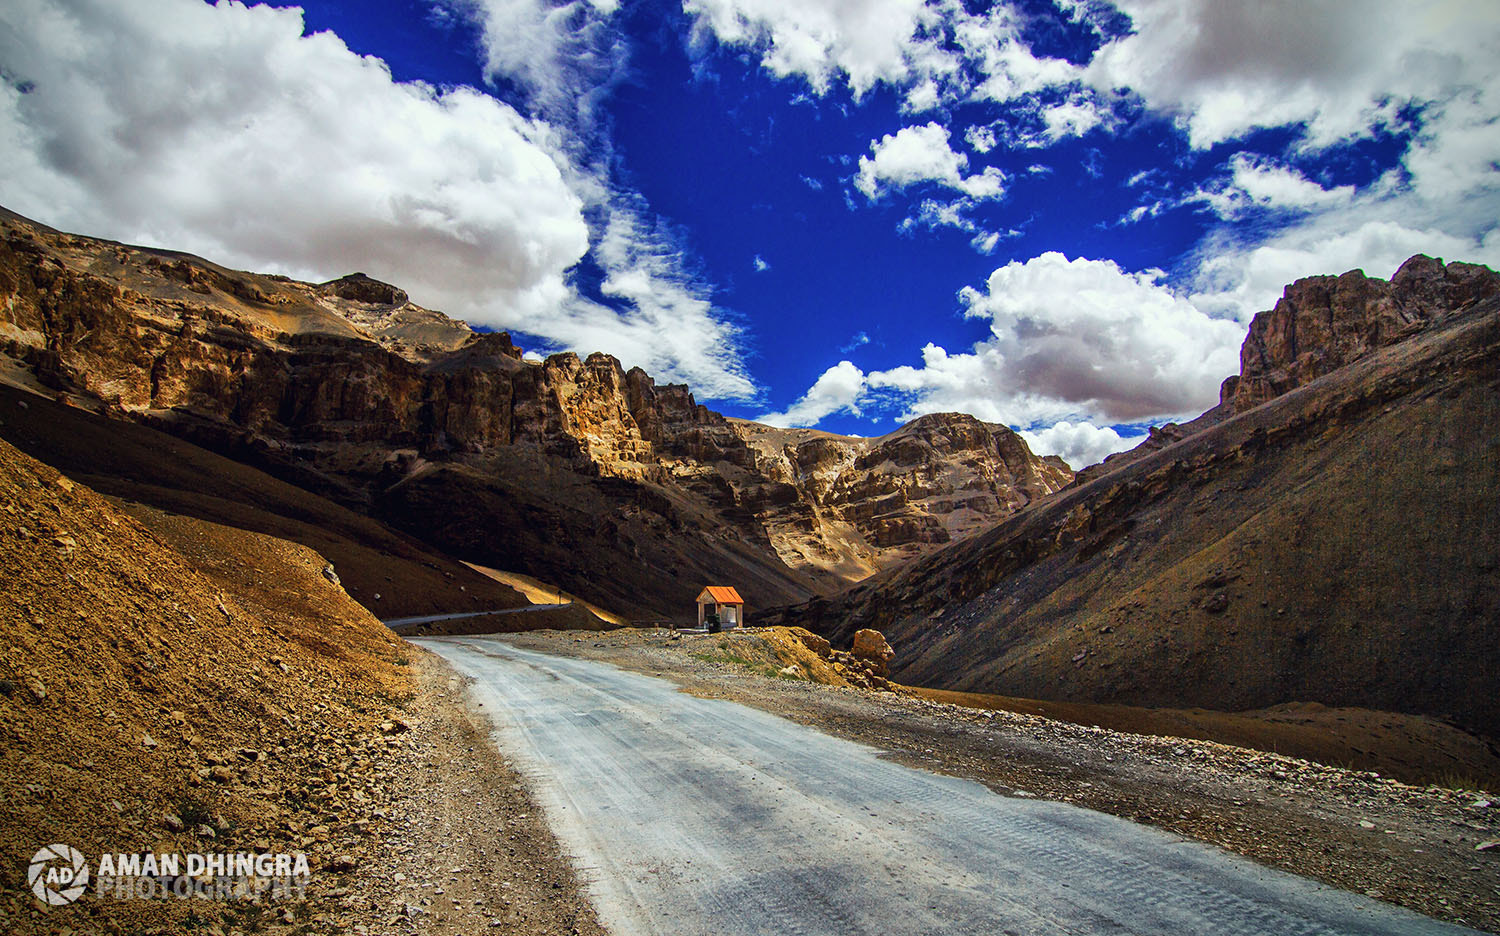 Photograph Home Alone by Aman Dhingra on 500px